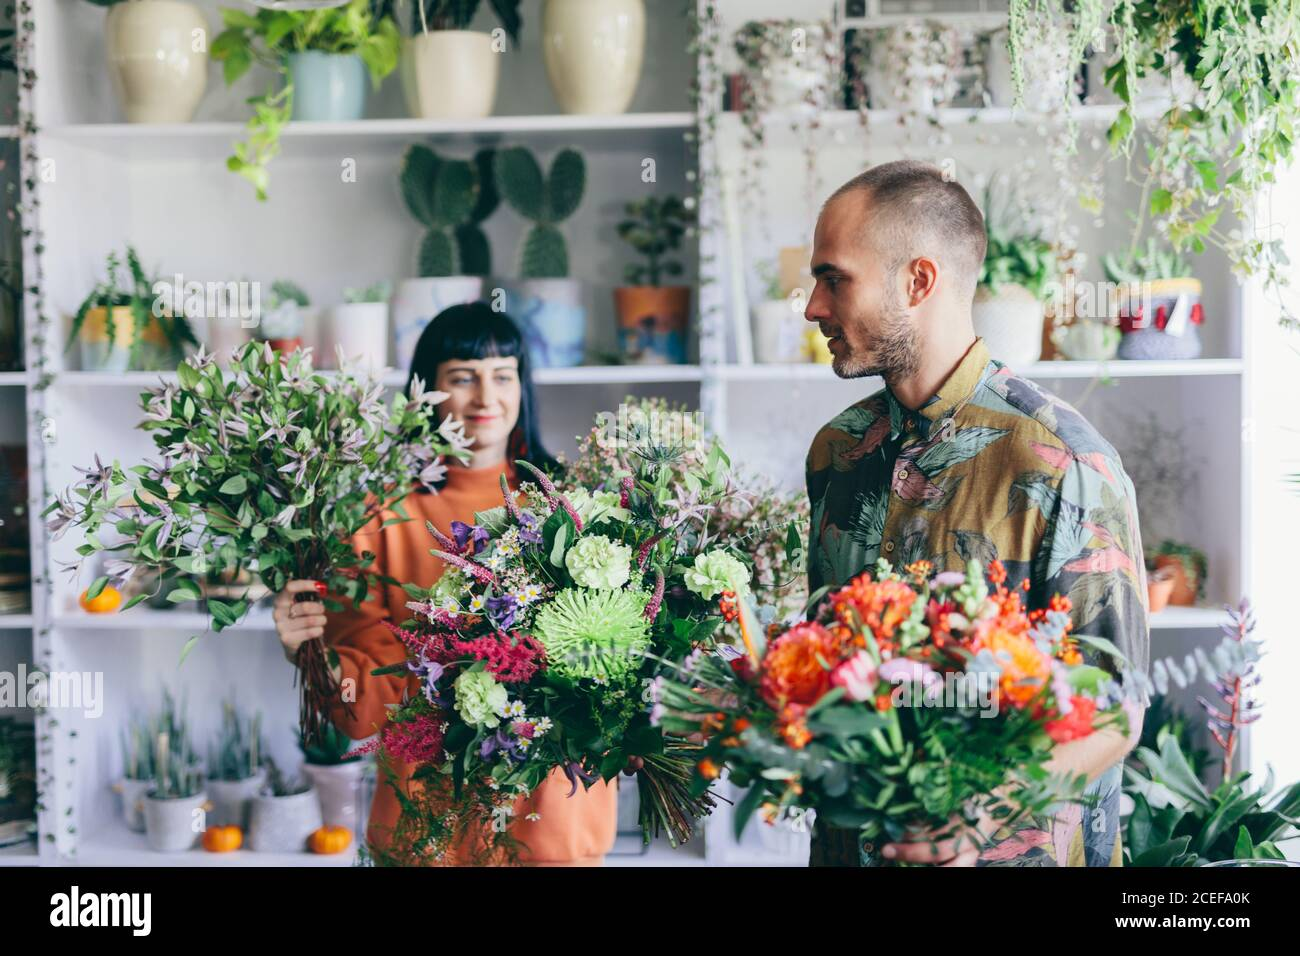 Man And Woman Carrying Bouquets In The Flower Shop Florist Small Business Creative Work Stock Photo Alamy